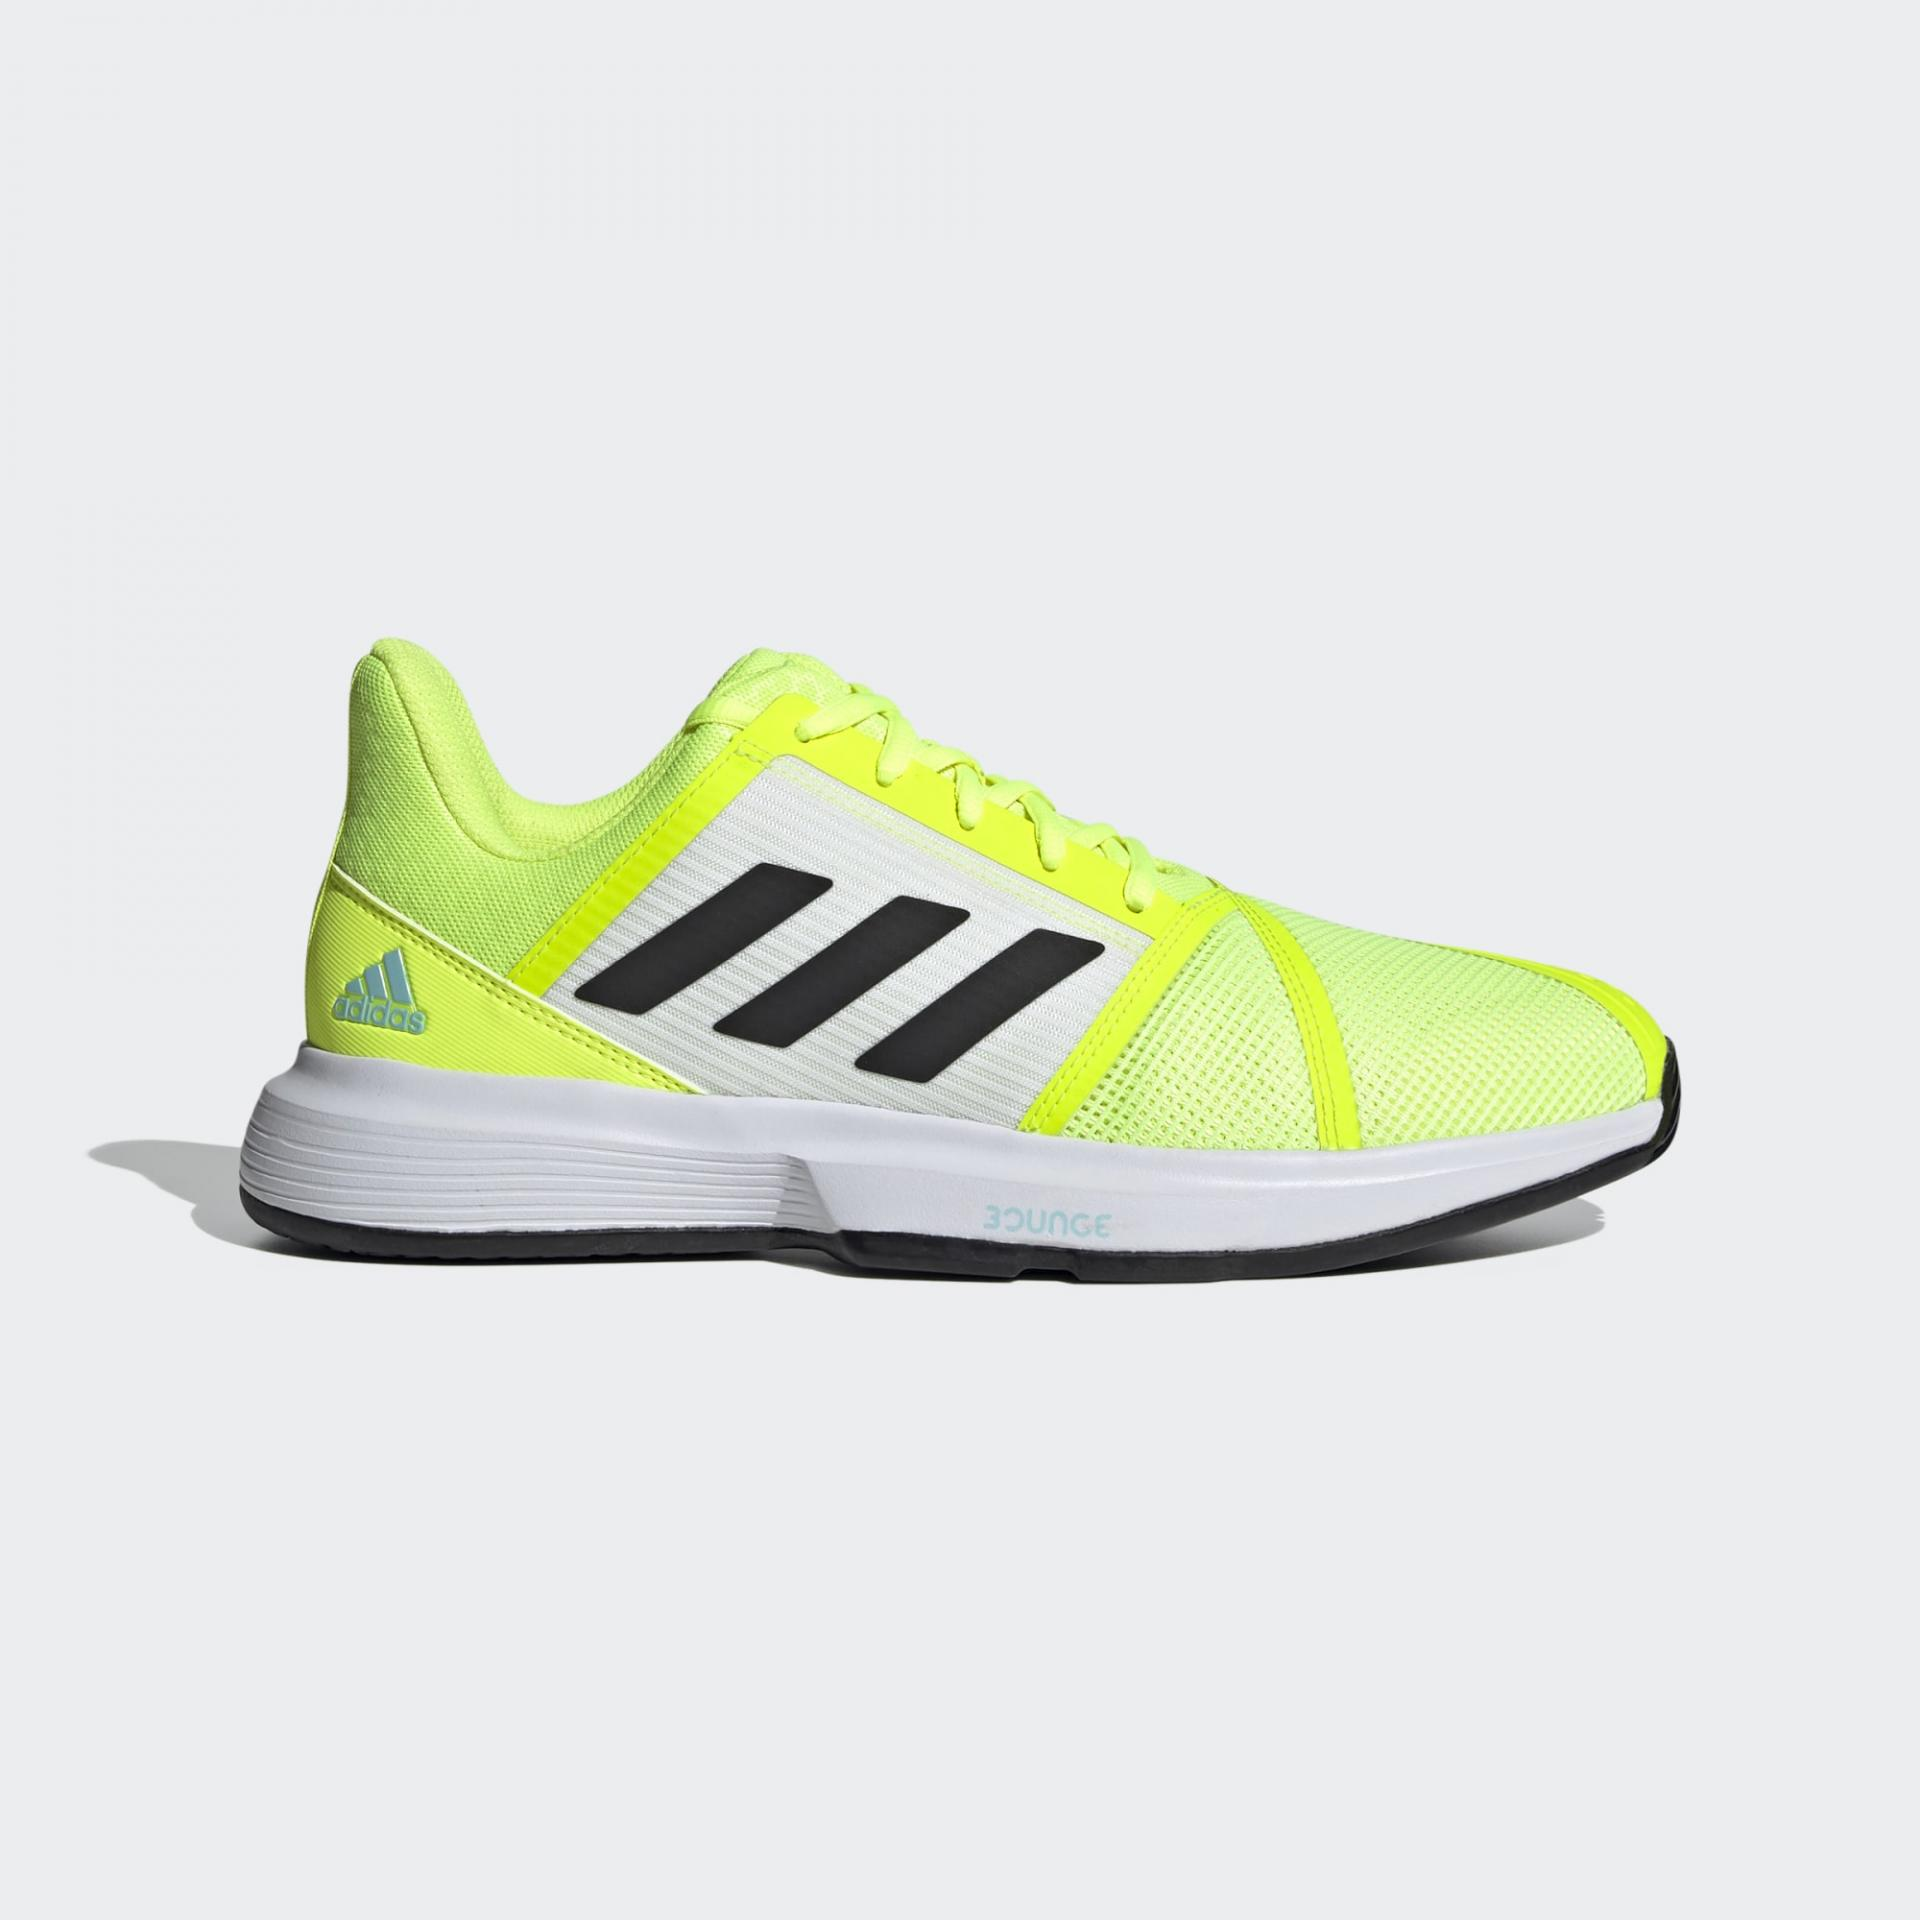 ADIDAS Courtjam Bounce *4262*